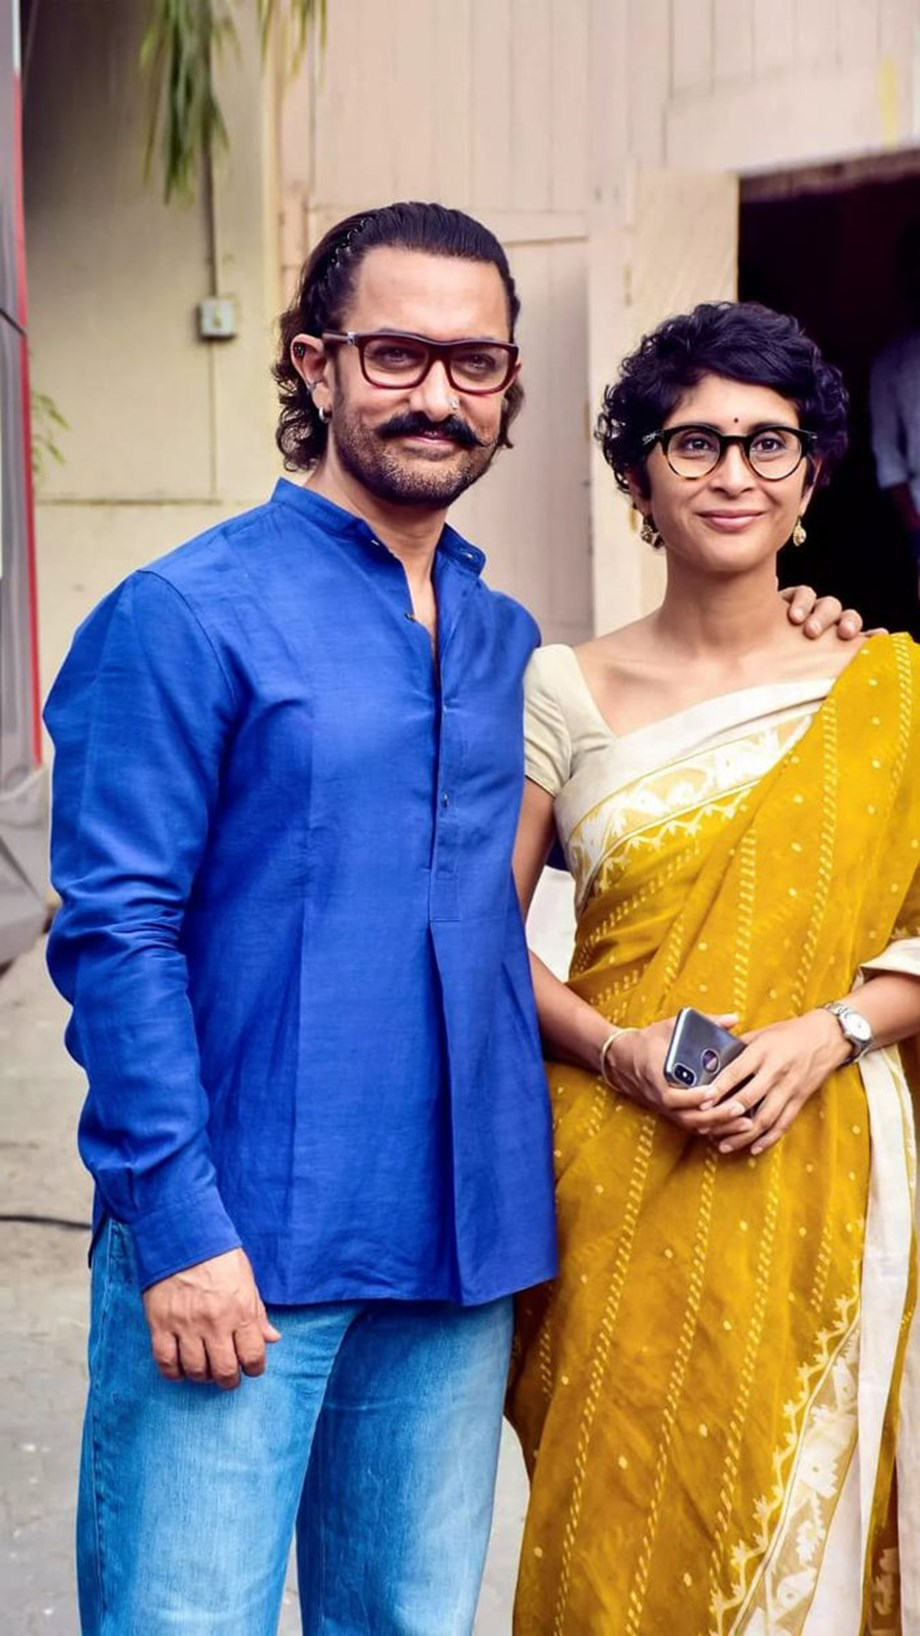 After #MeToo fallout: Aamir Khan out from movie